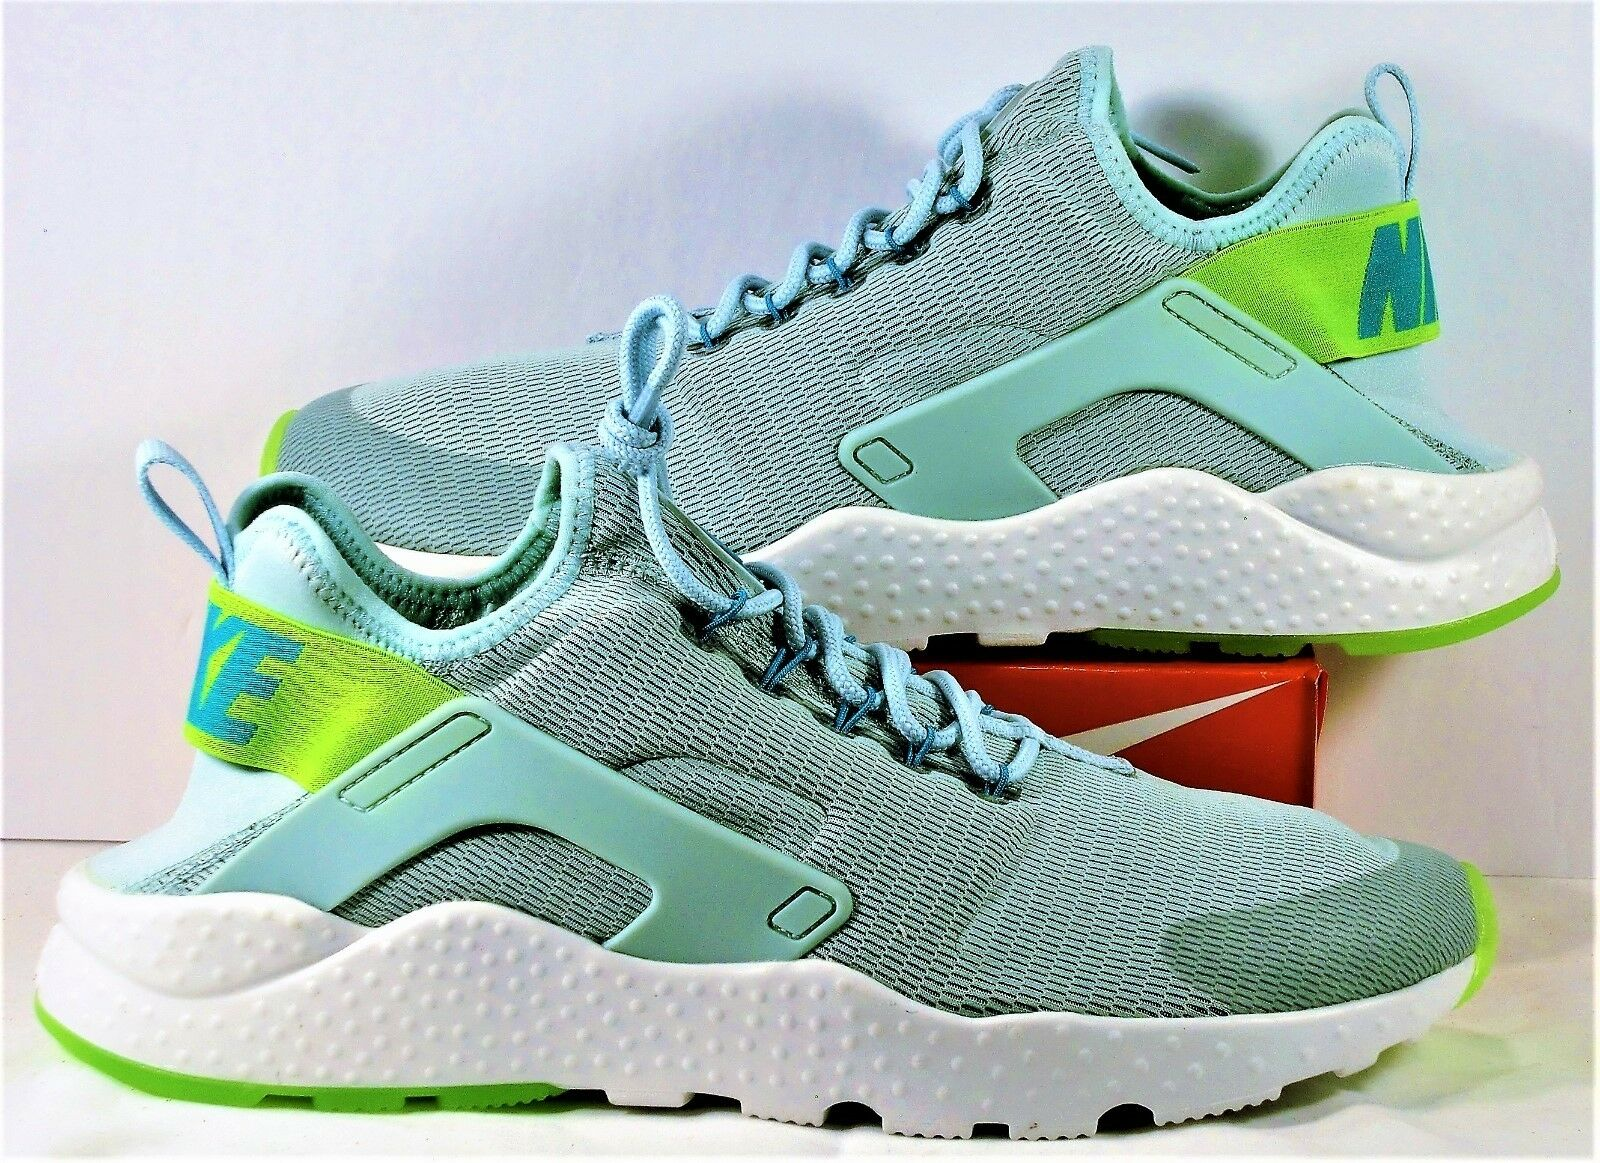 Nike Air Huarache Run Ultra Green & White Women Running Sz 12 NEW 819151 301